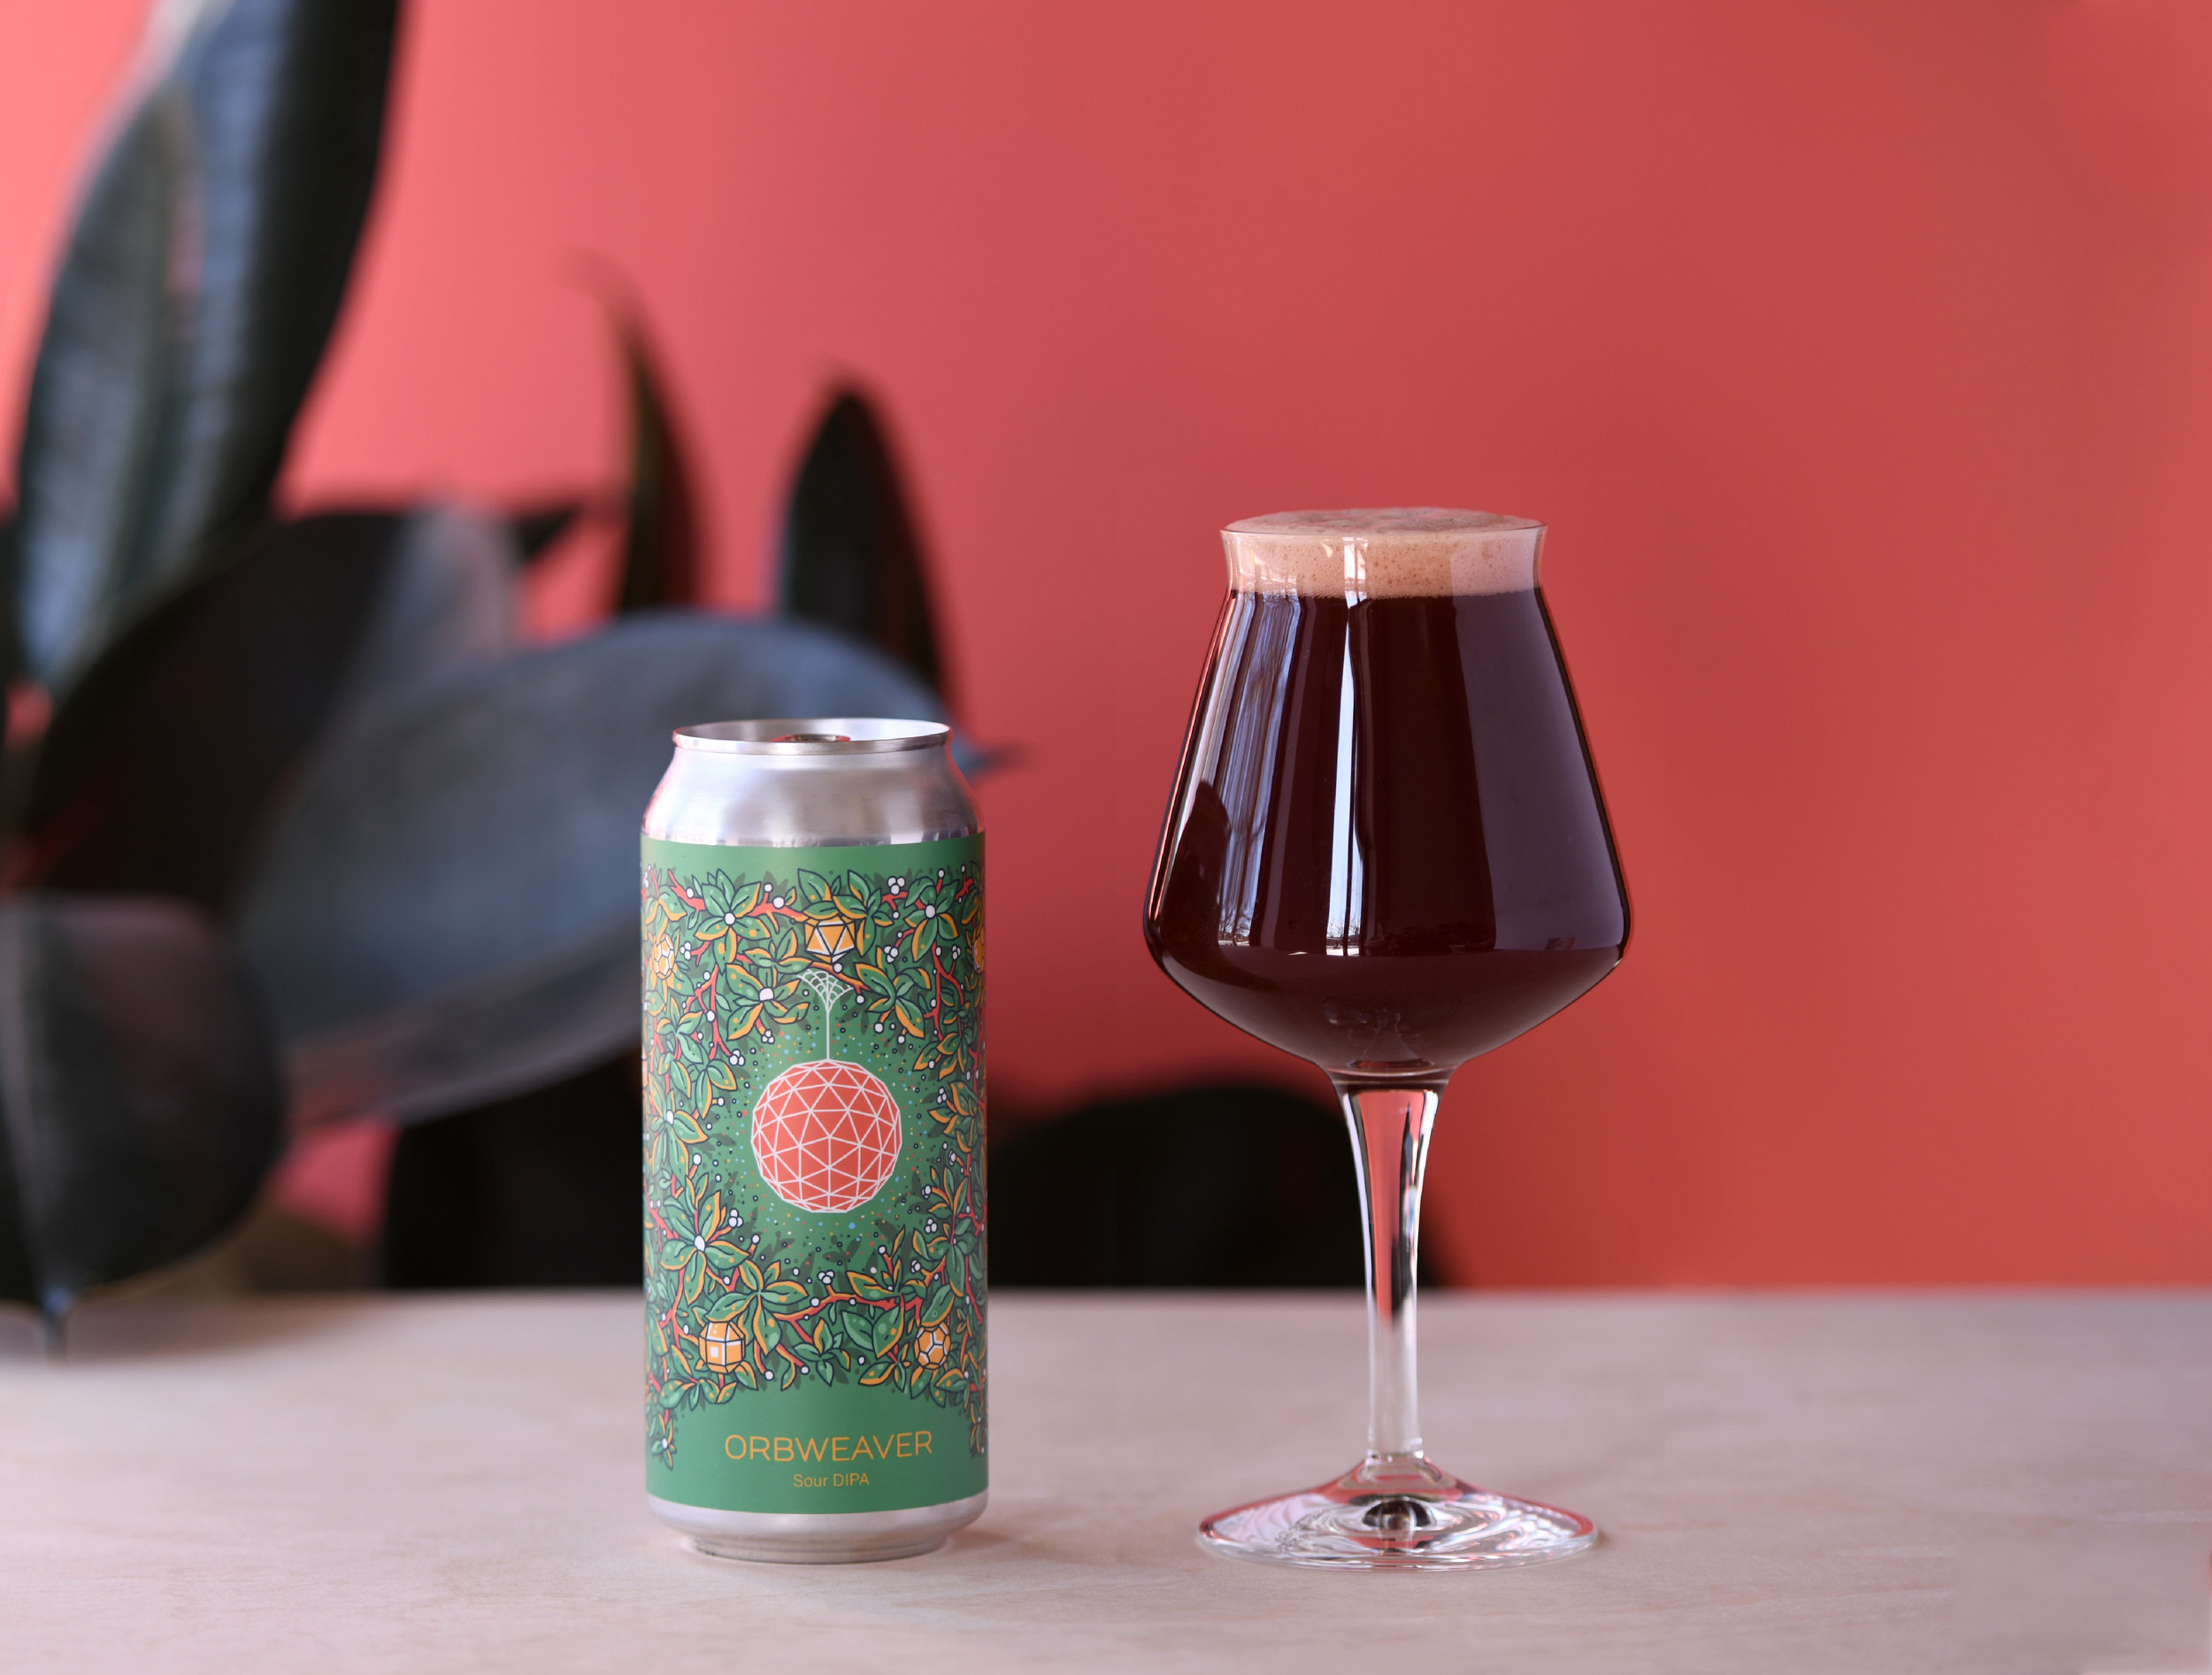 Photo of Orbweaver in a can and Teku